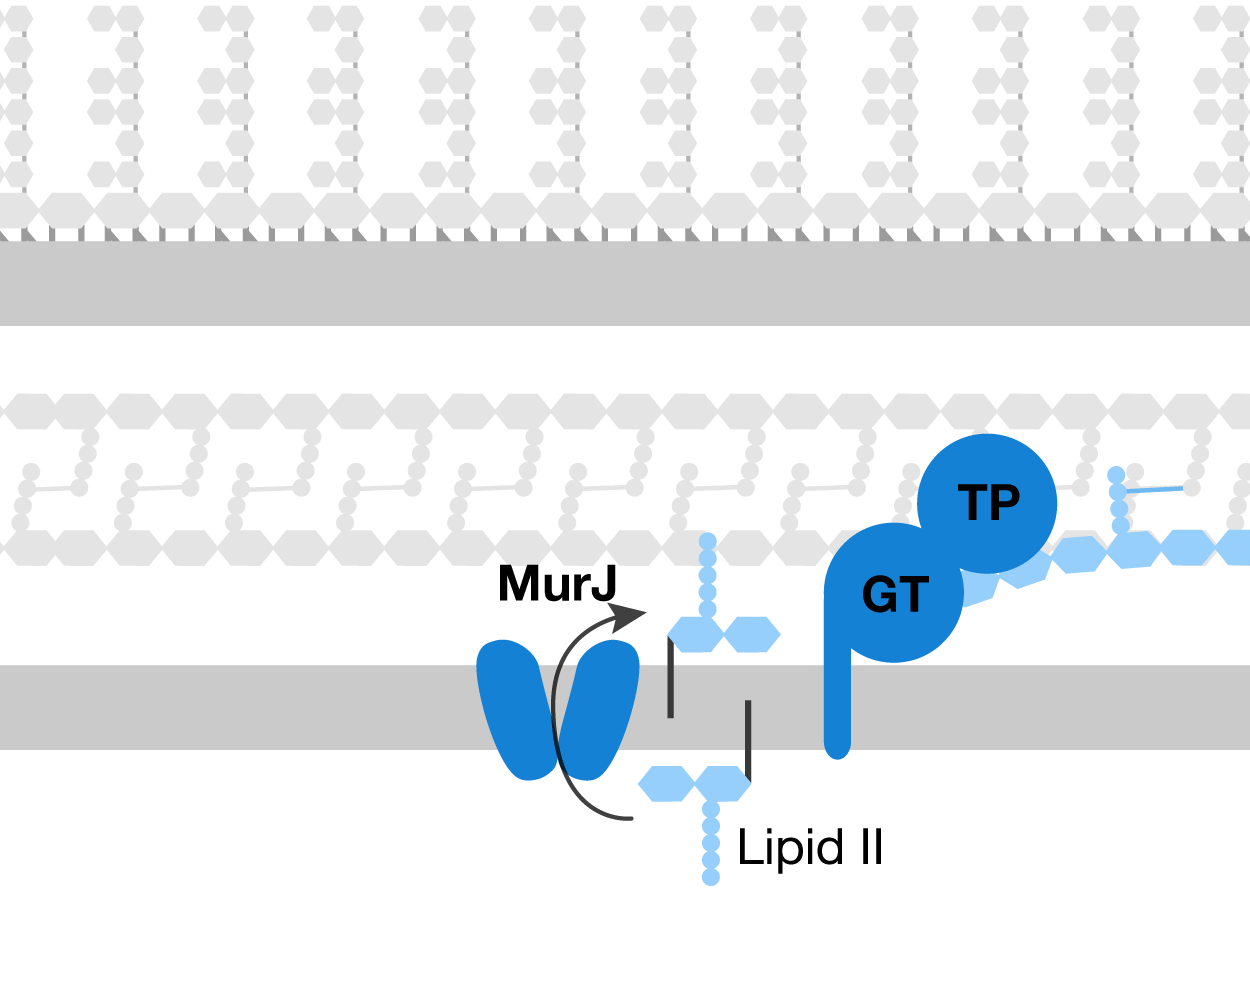 Cell wall overview - Lipid II, the monomer for bacterial cell wall, is synthesized inside the cytoplasm and then flipped outward by the transporter MurJ. It is then polymerized by glycosyltransferases (GTs) and crosslinked by transpeptidases (TPs) to make the protective mesh that is cell wall.